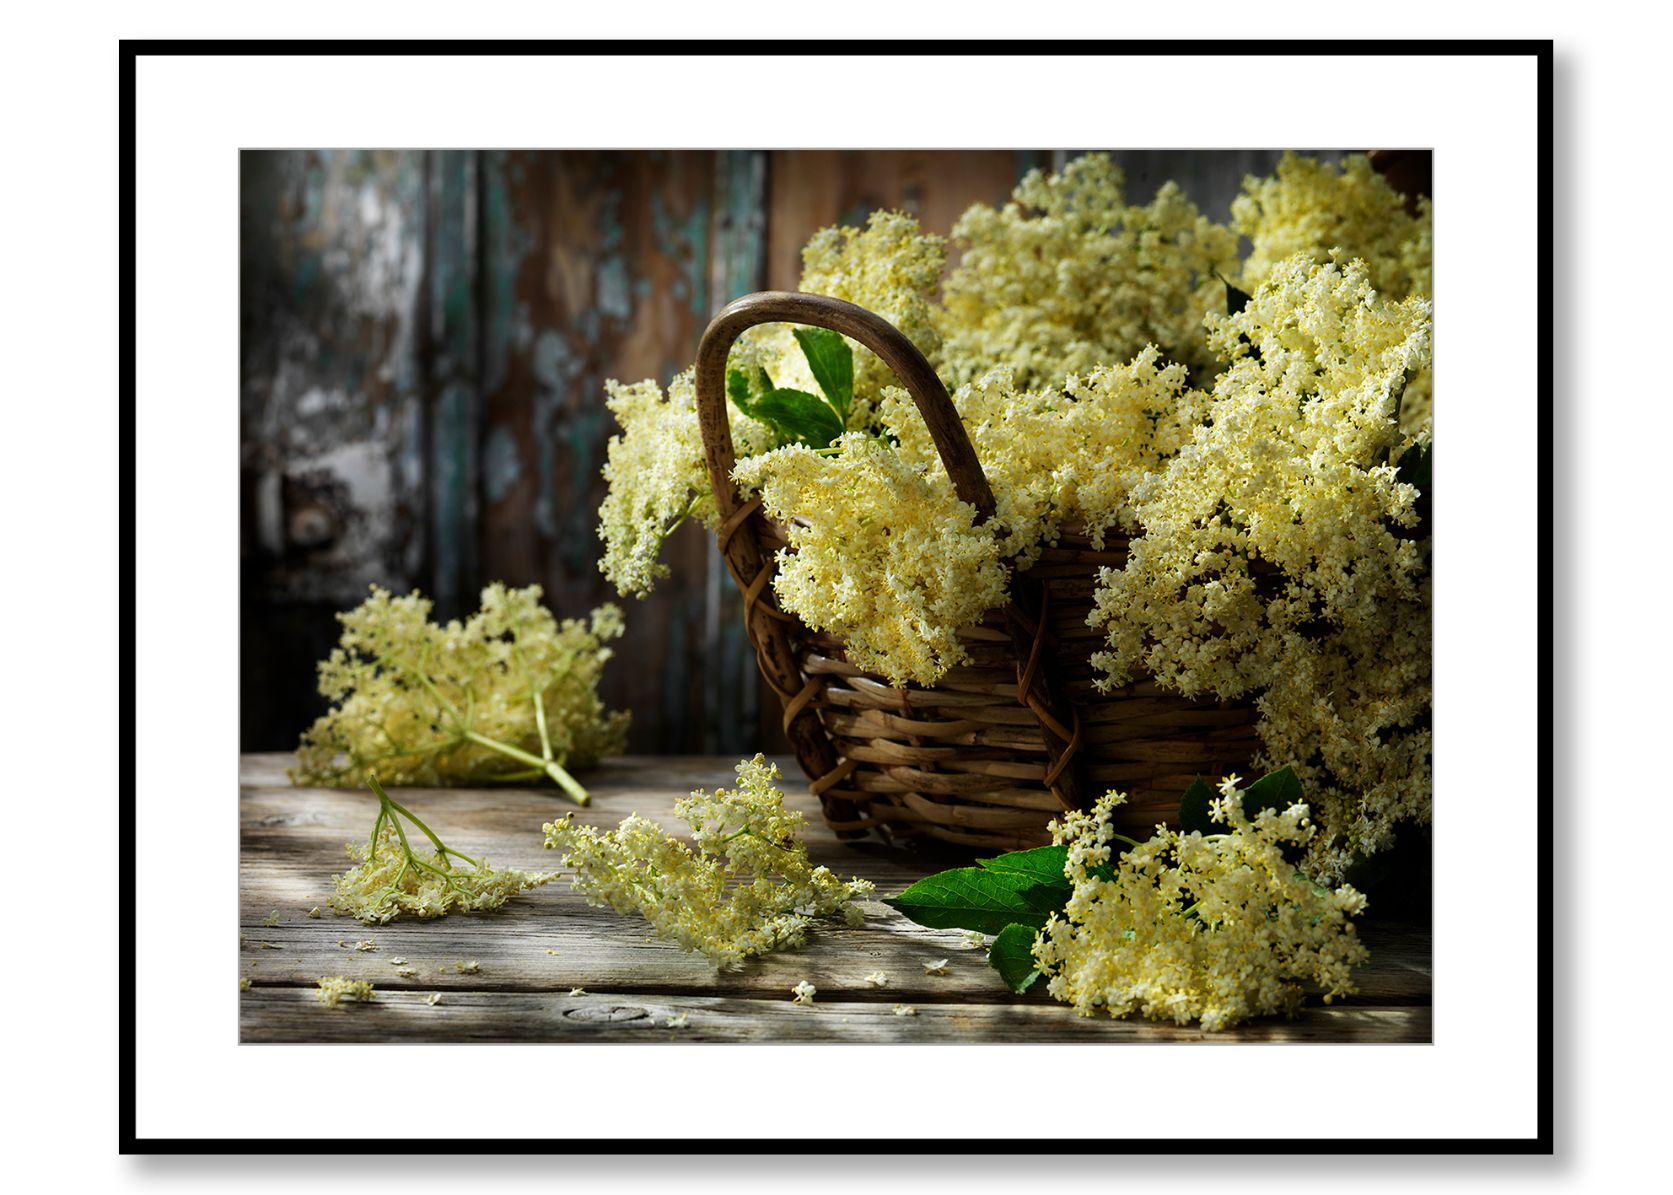 Elderflowers. Food Art. Prints for sale. Photo by Fredrik Rege